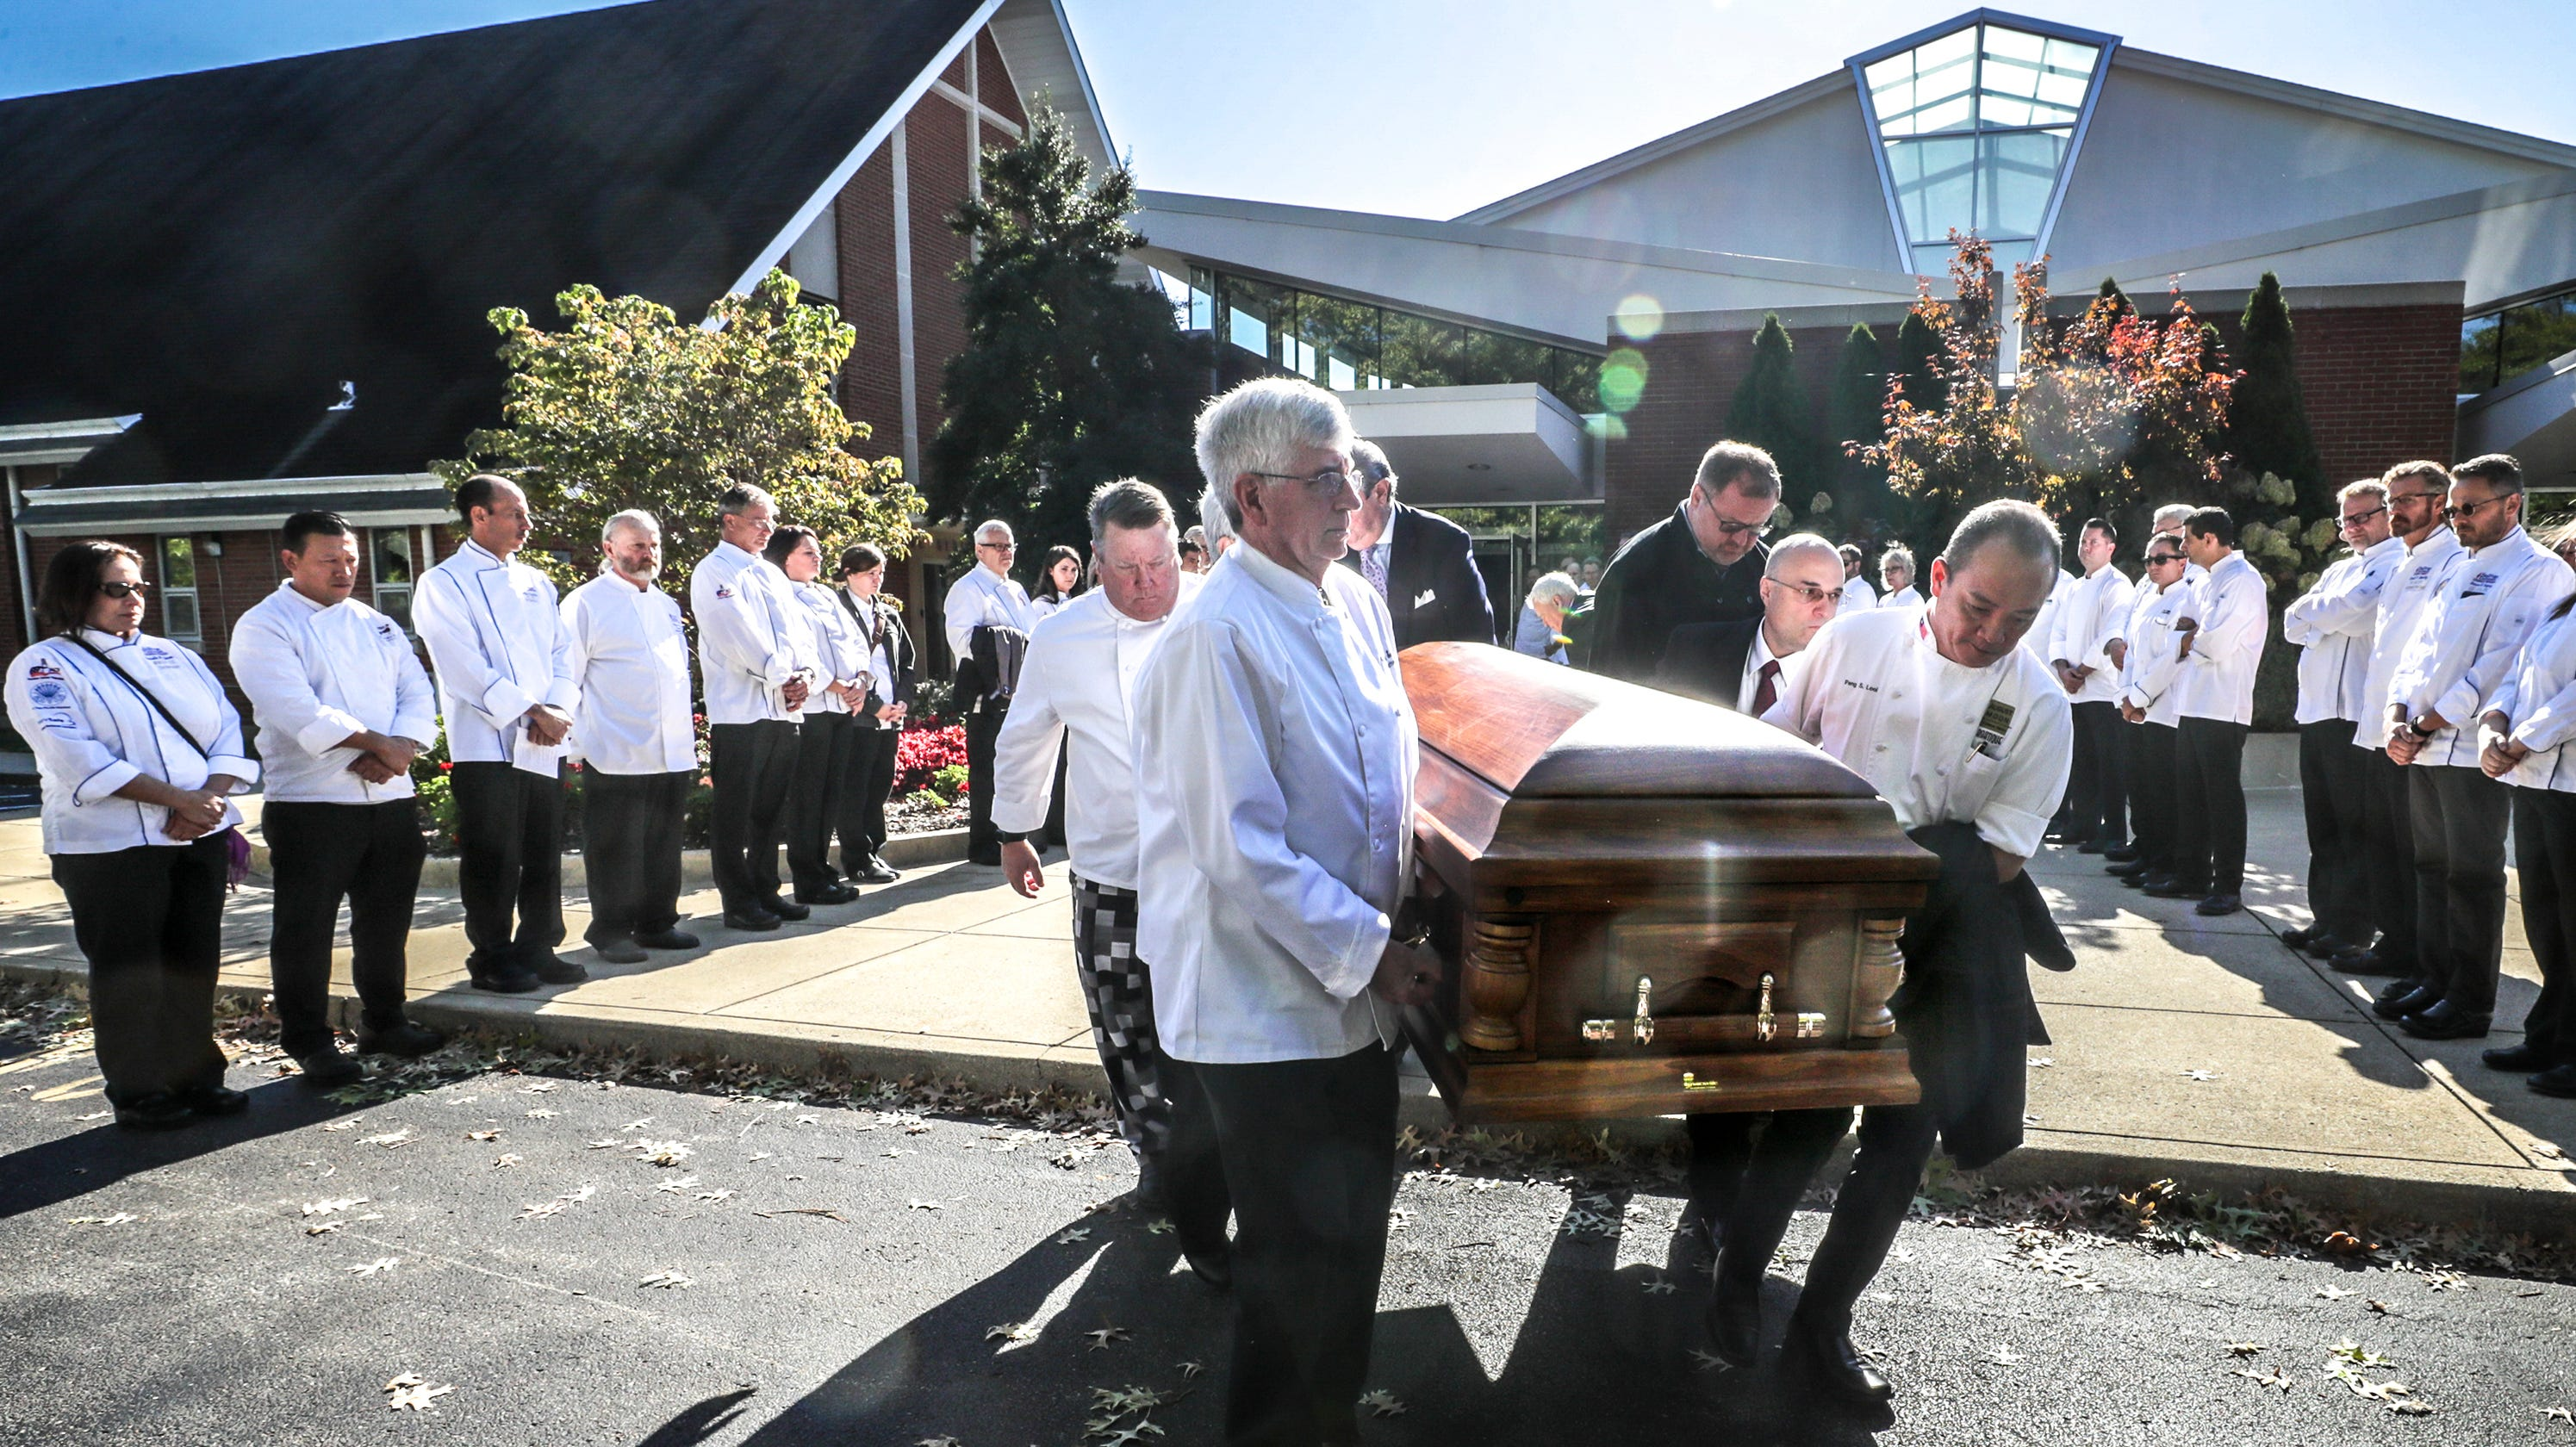 Hundreds attend funeral for Louisville chef Dean Corbett